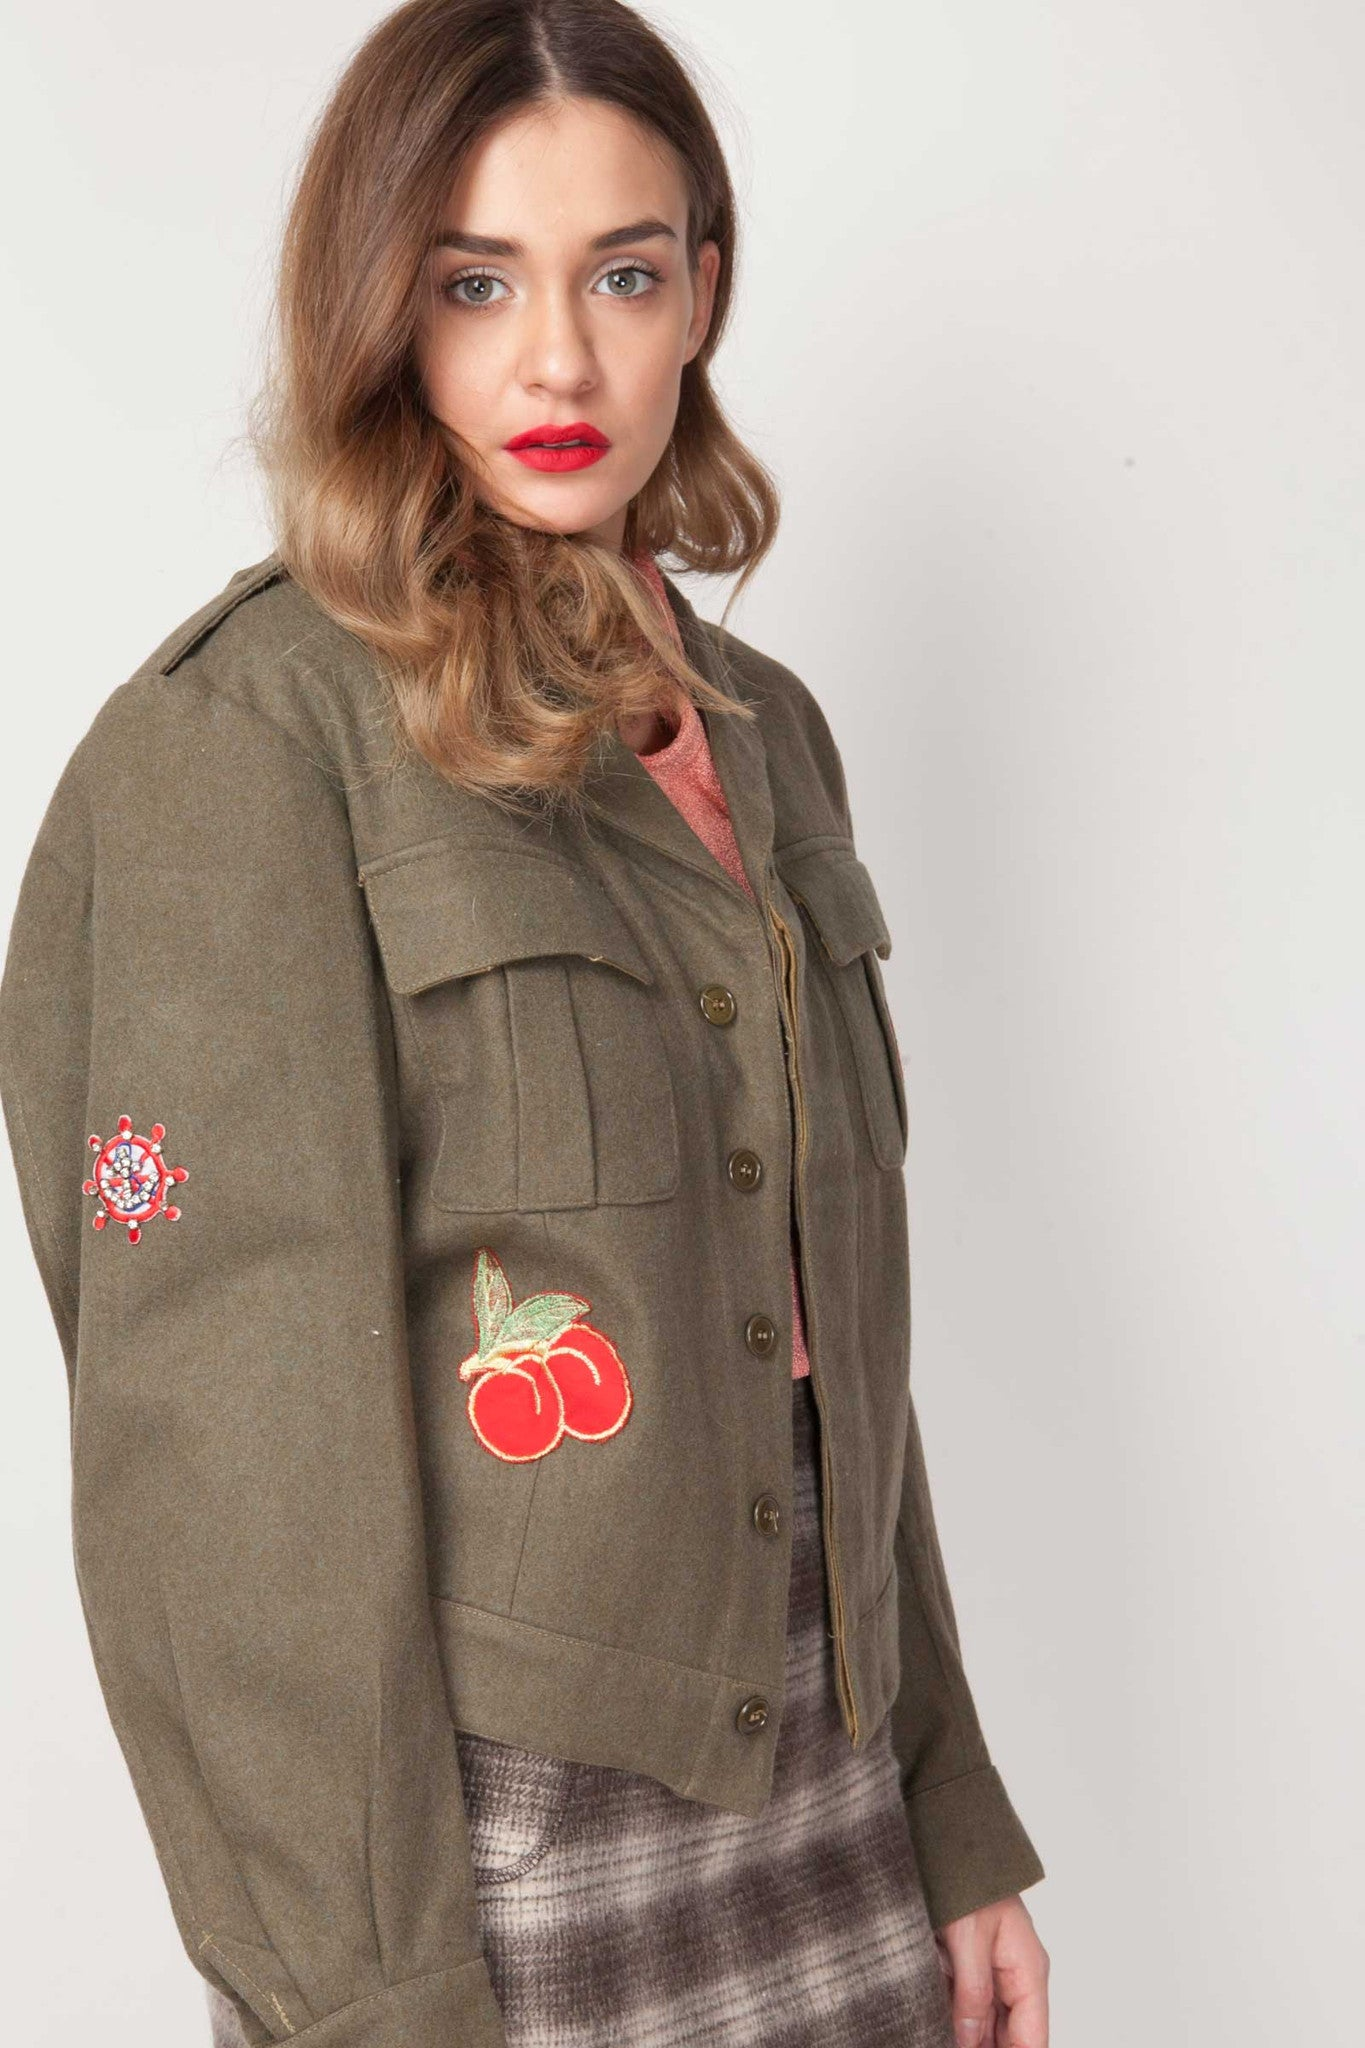 Vintage Rahele military jacket